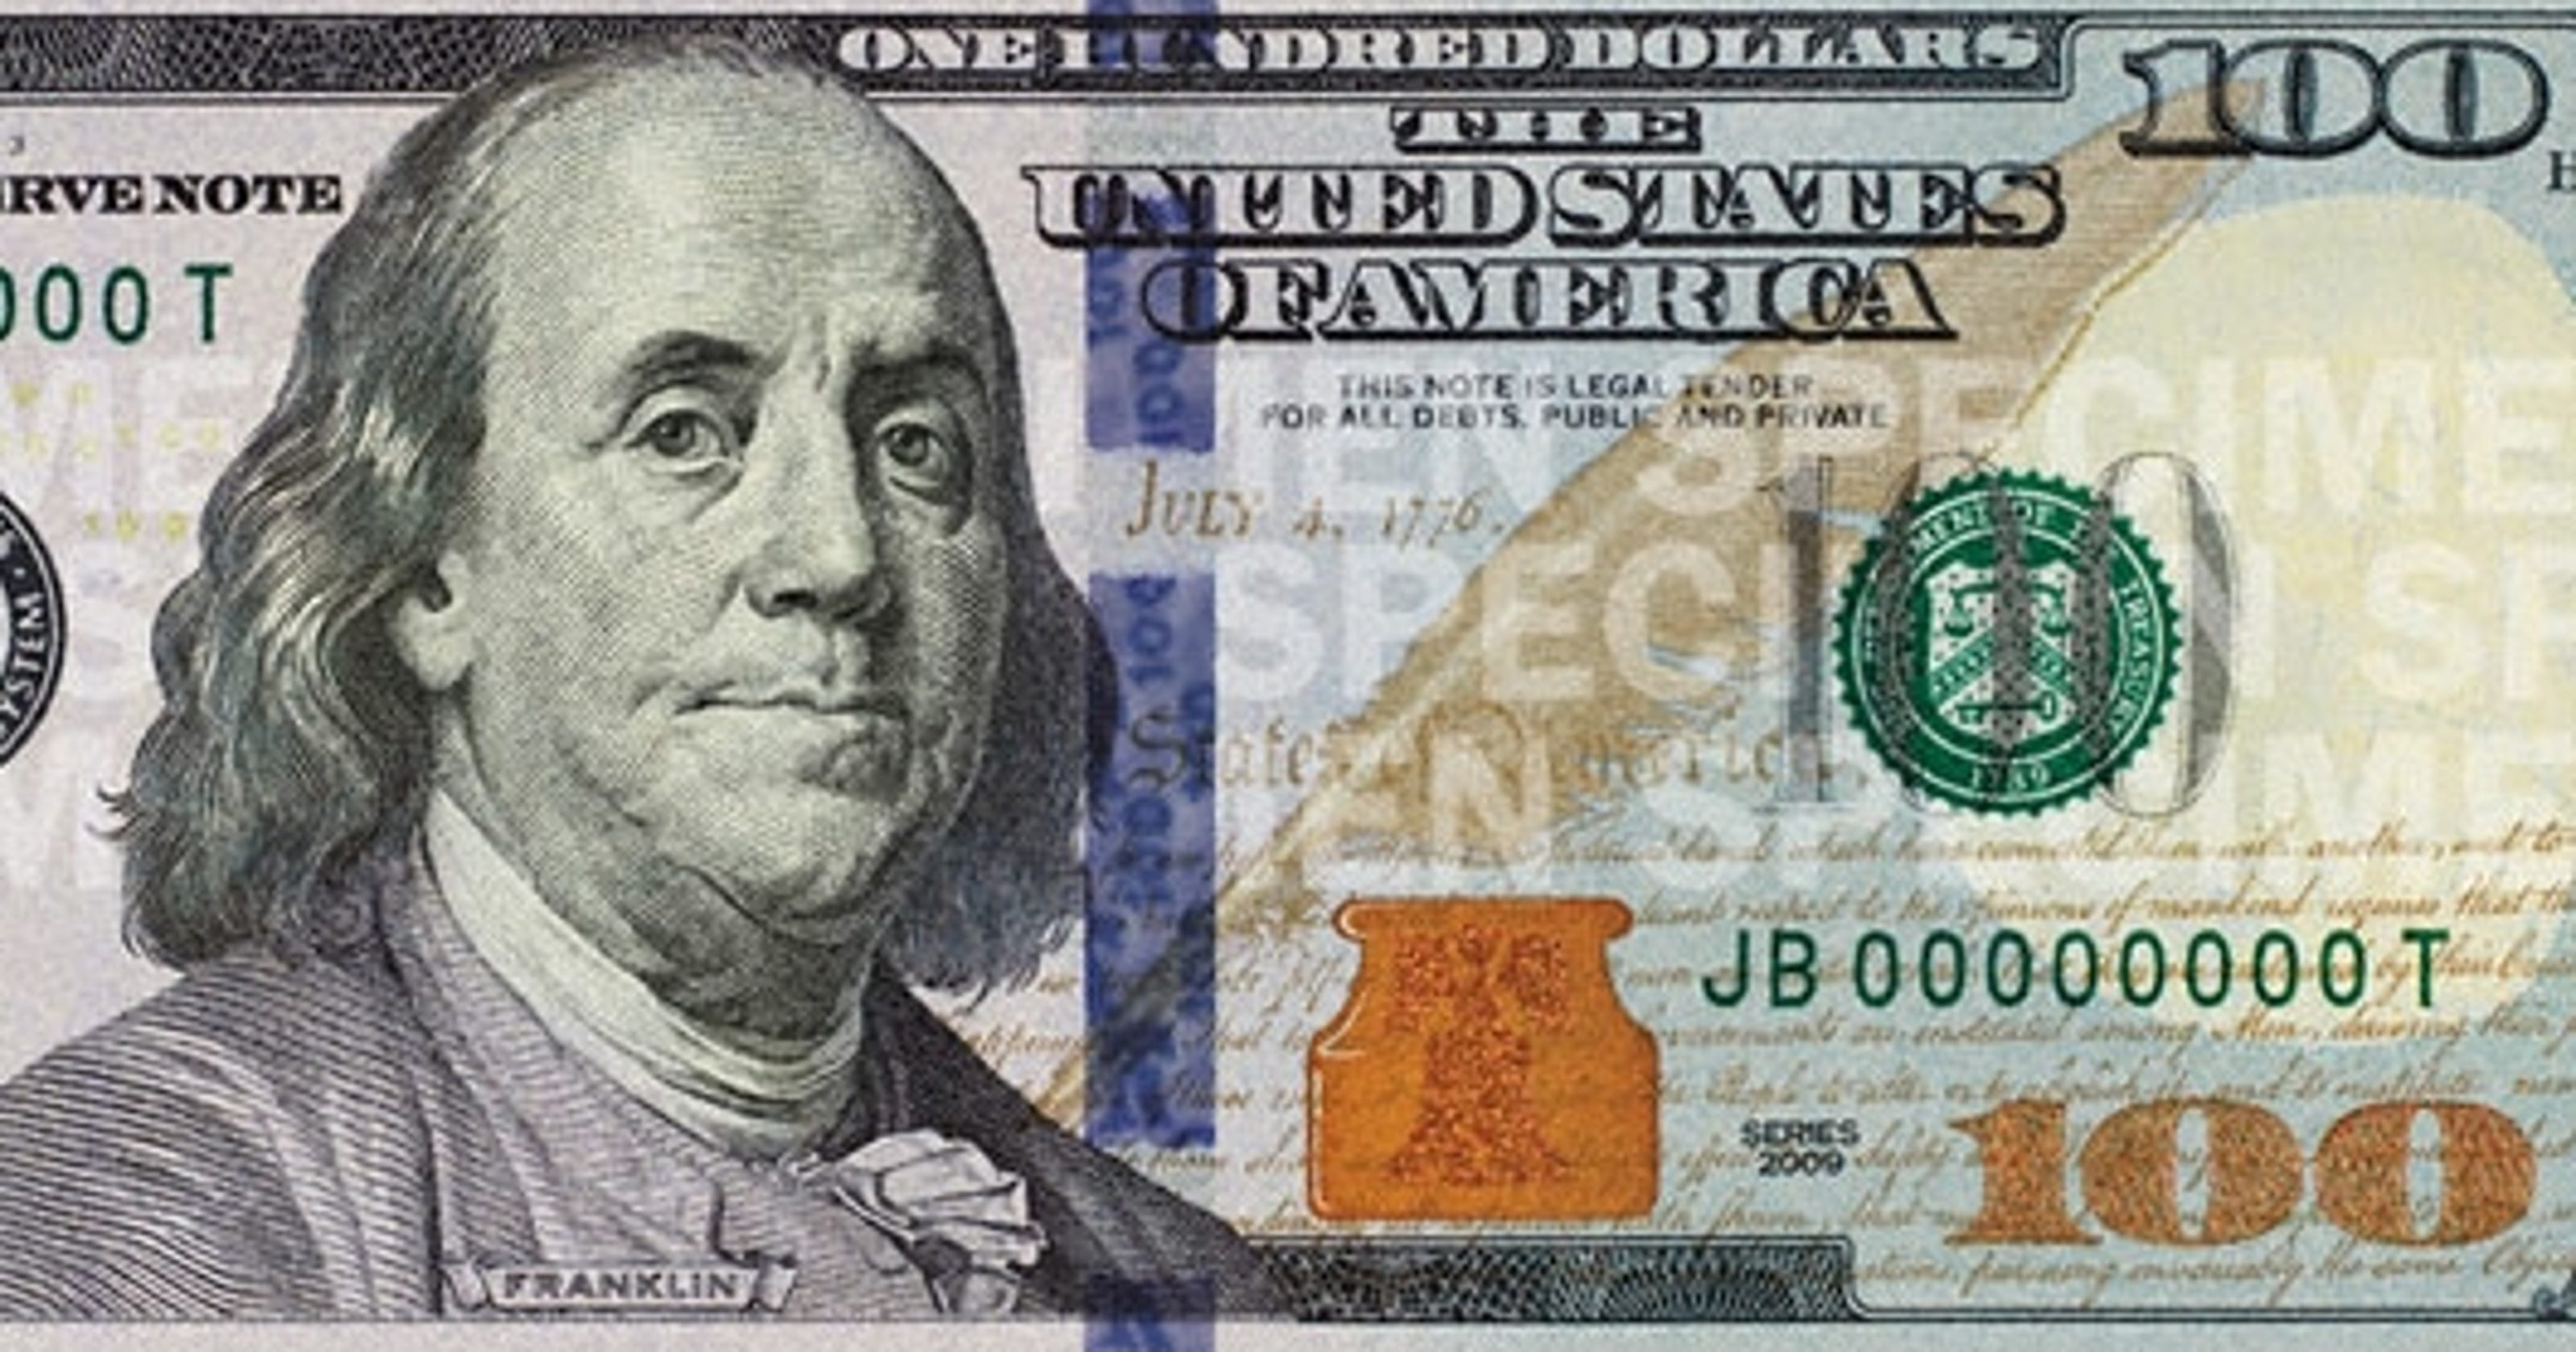 New currency out Tuesday: 411 on the new $100 100 Dollar Bill